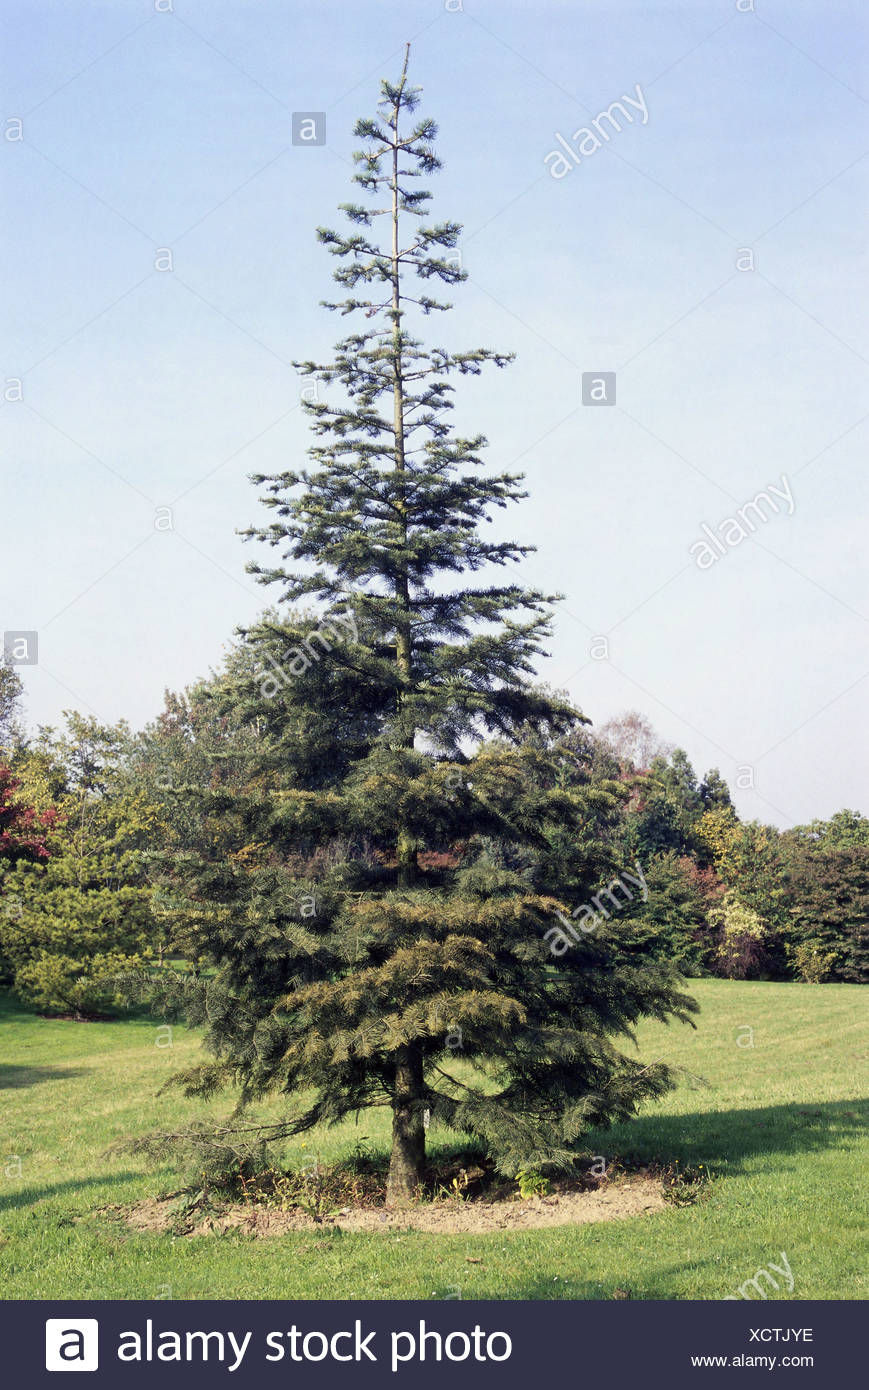 Botany Abies White Fir Abies Concolor Species Lowiana